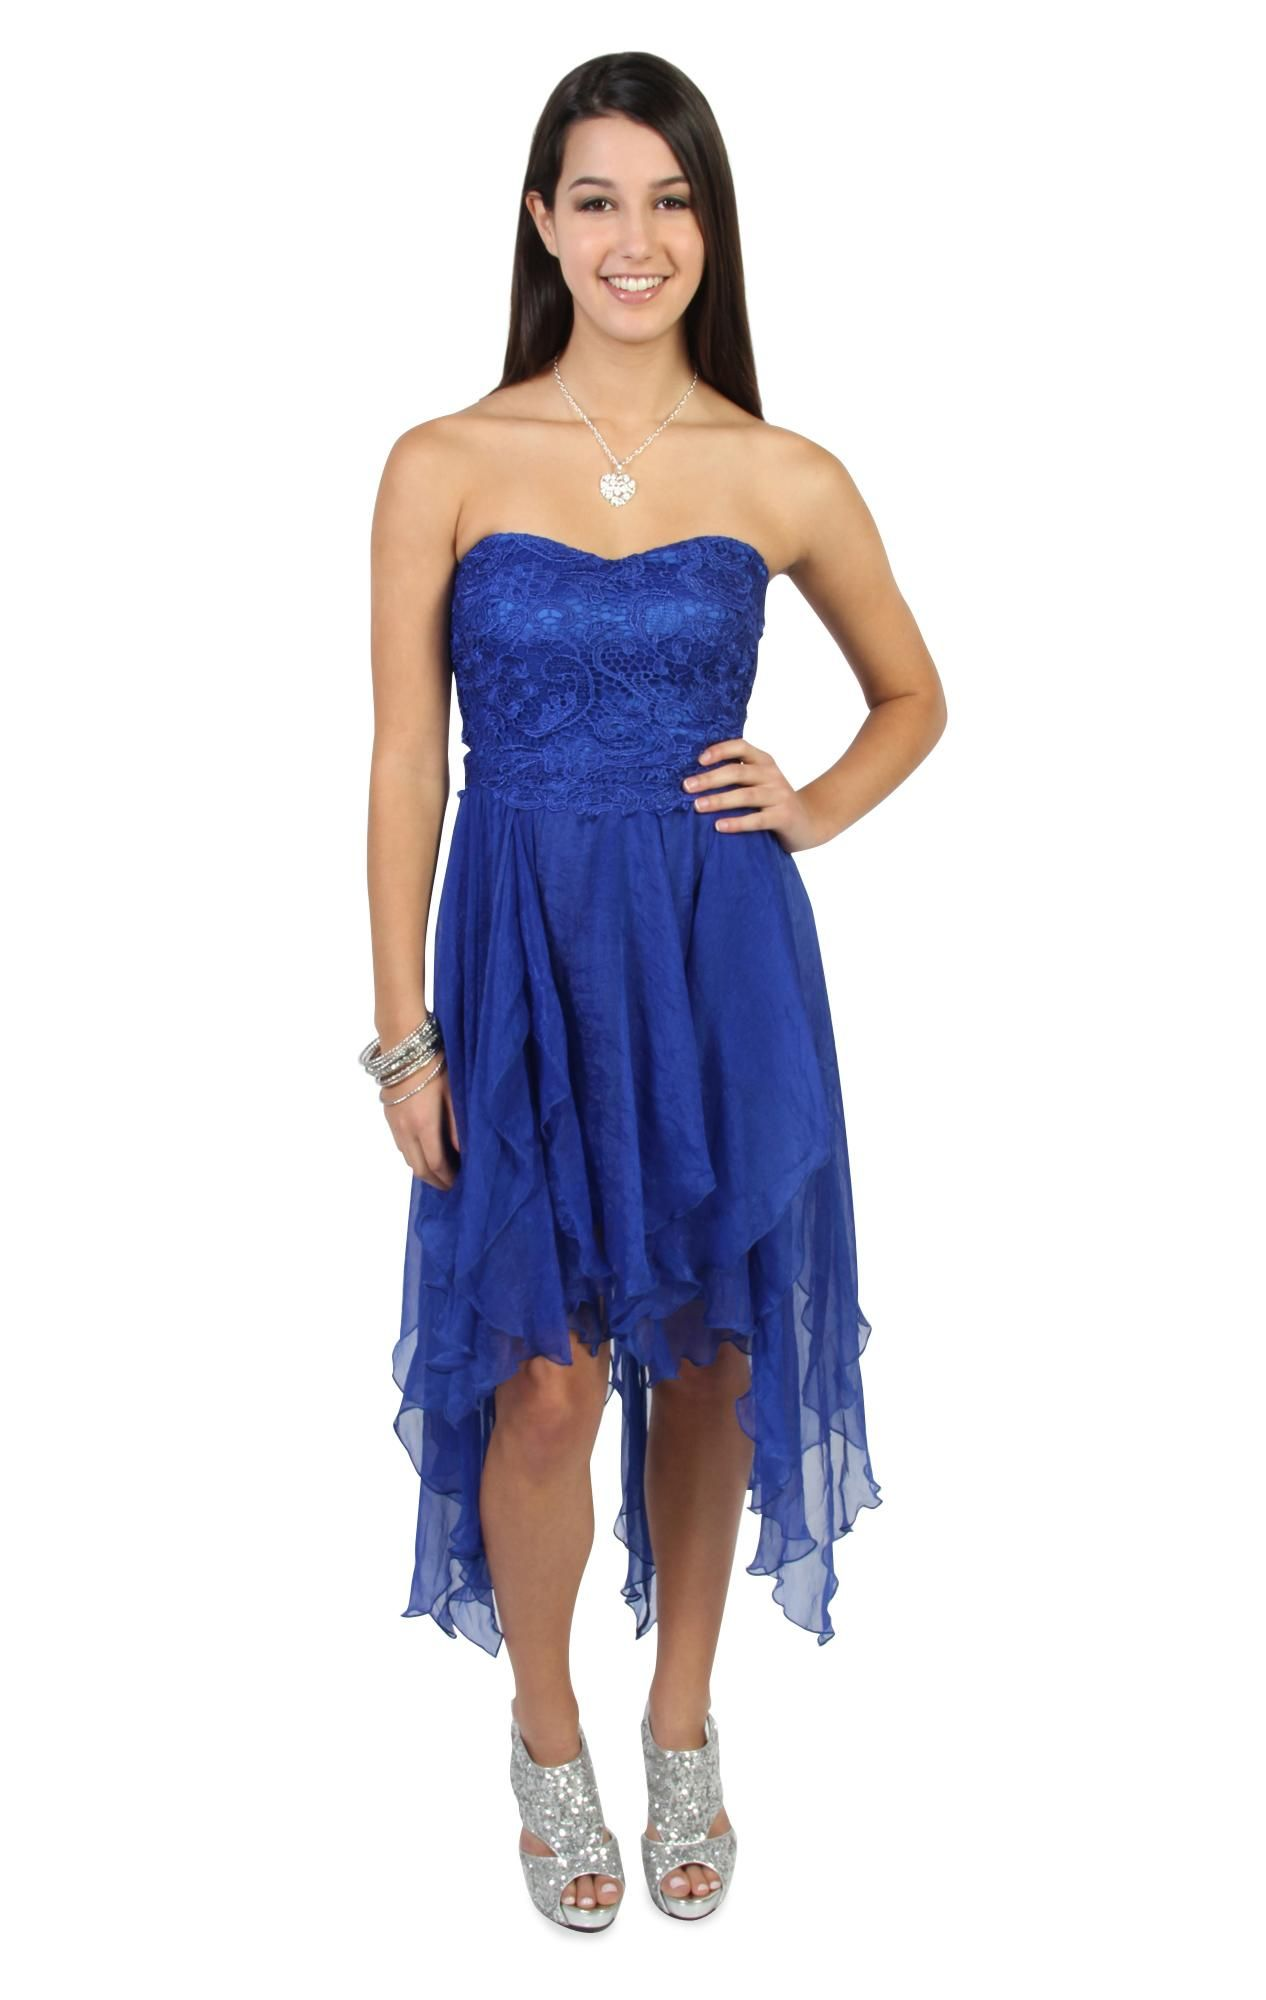 royal blue strapless lace high low prom dress | Prom ...